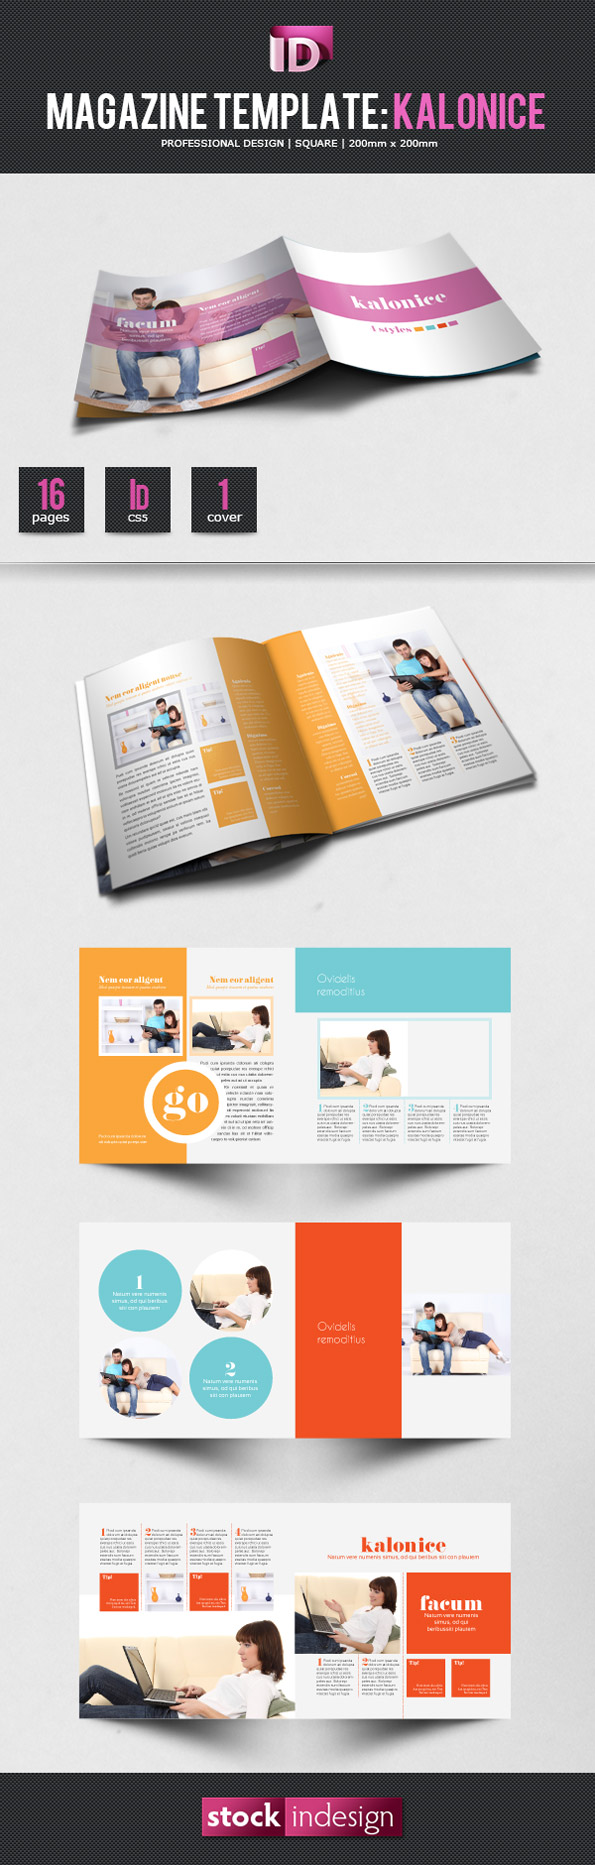 E magazine template free download mixemike for E magazine templates free download